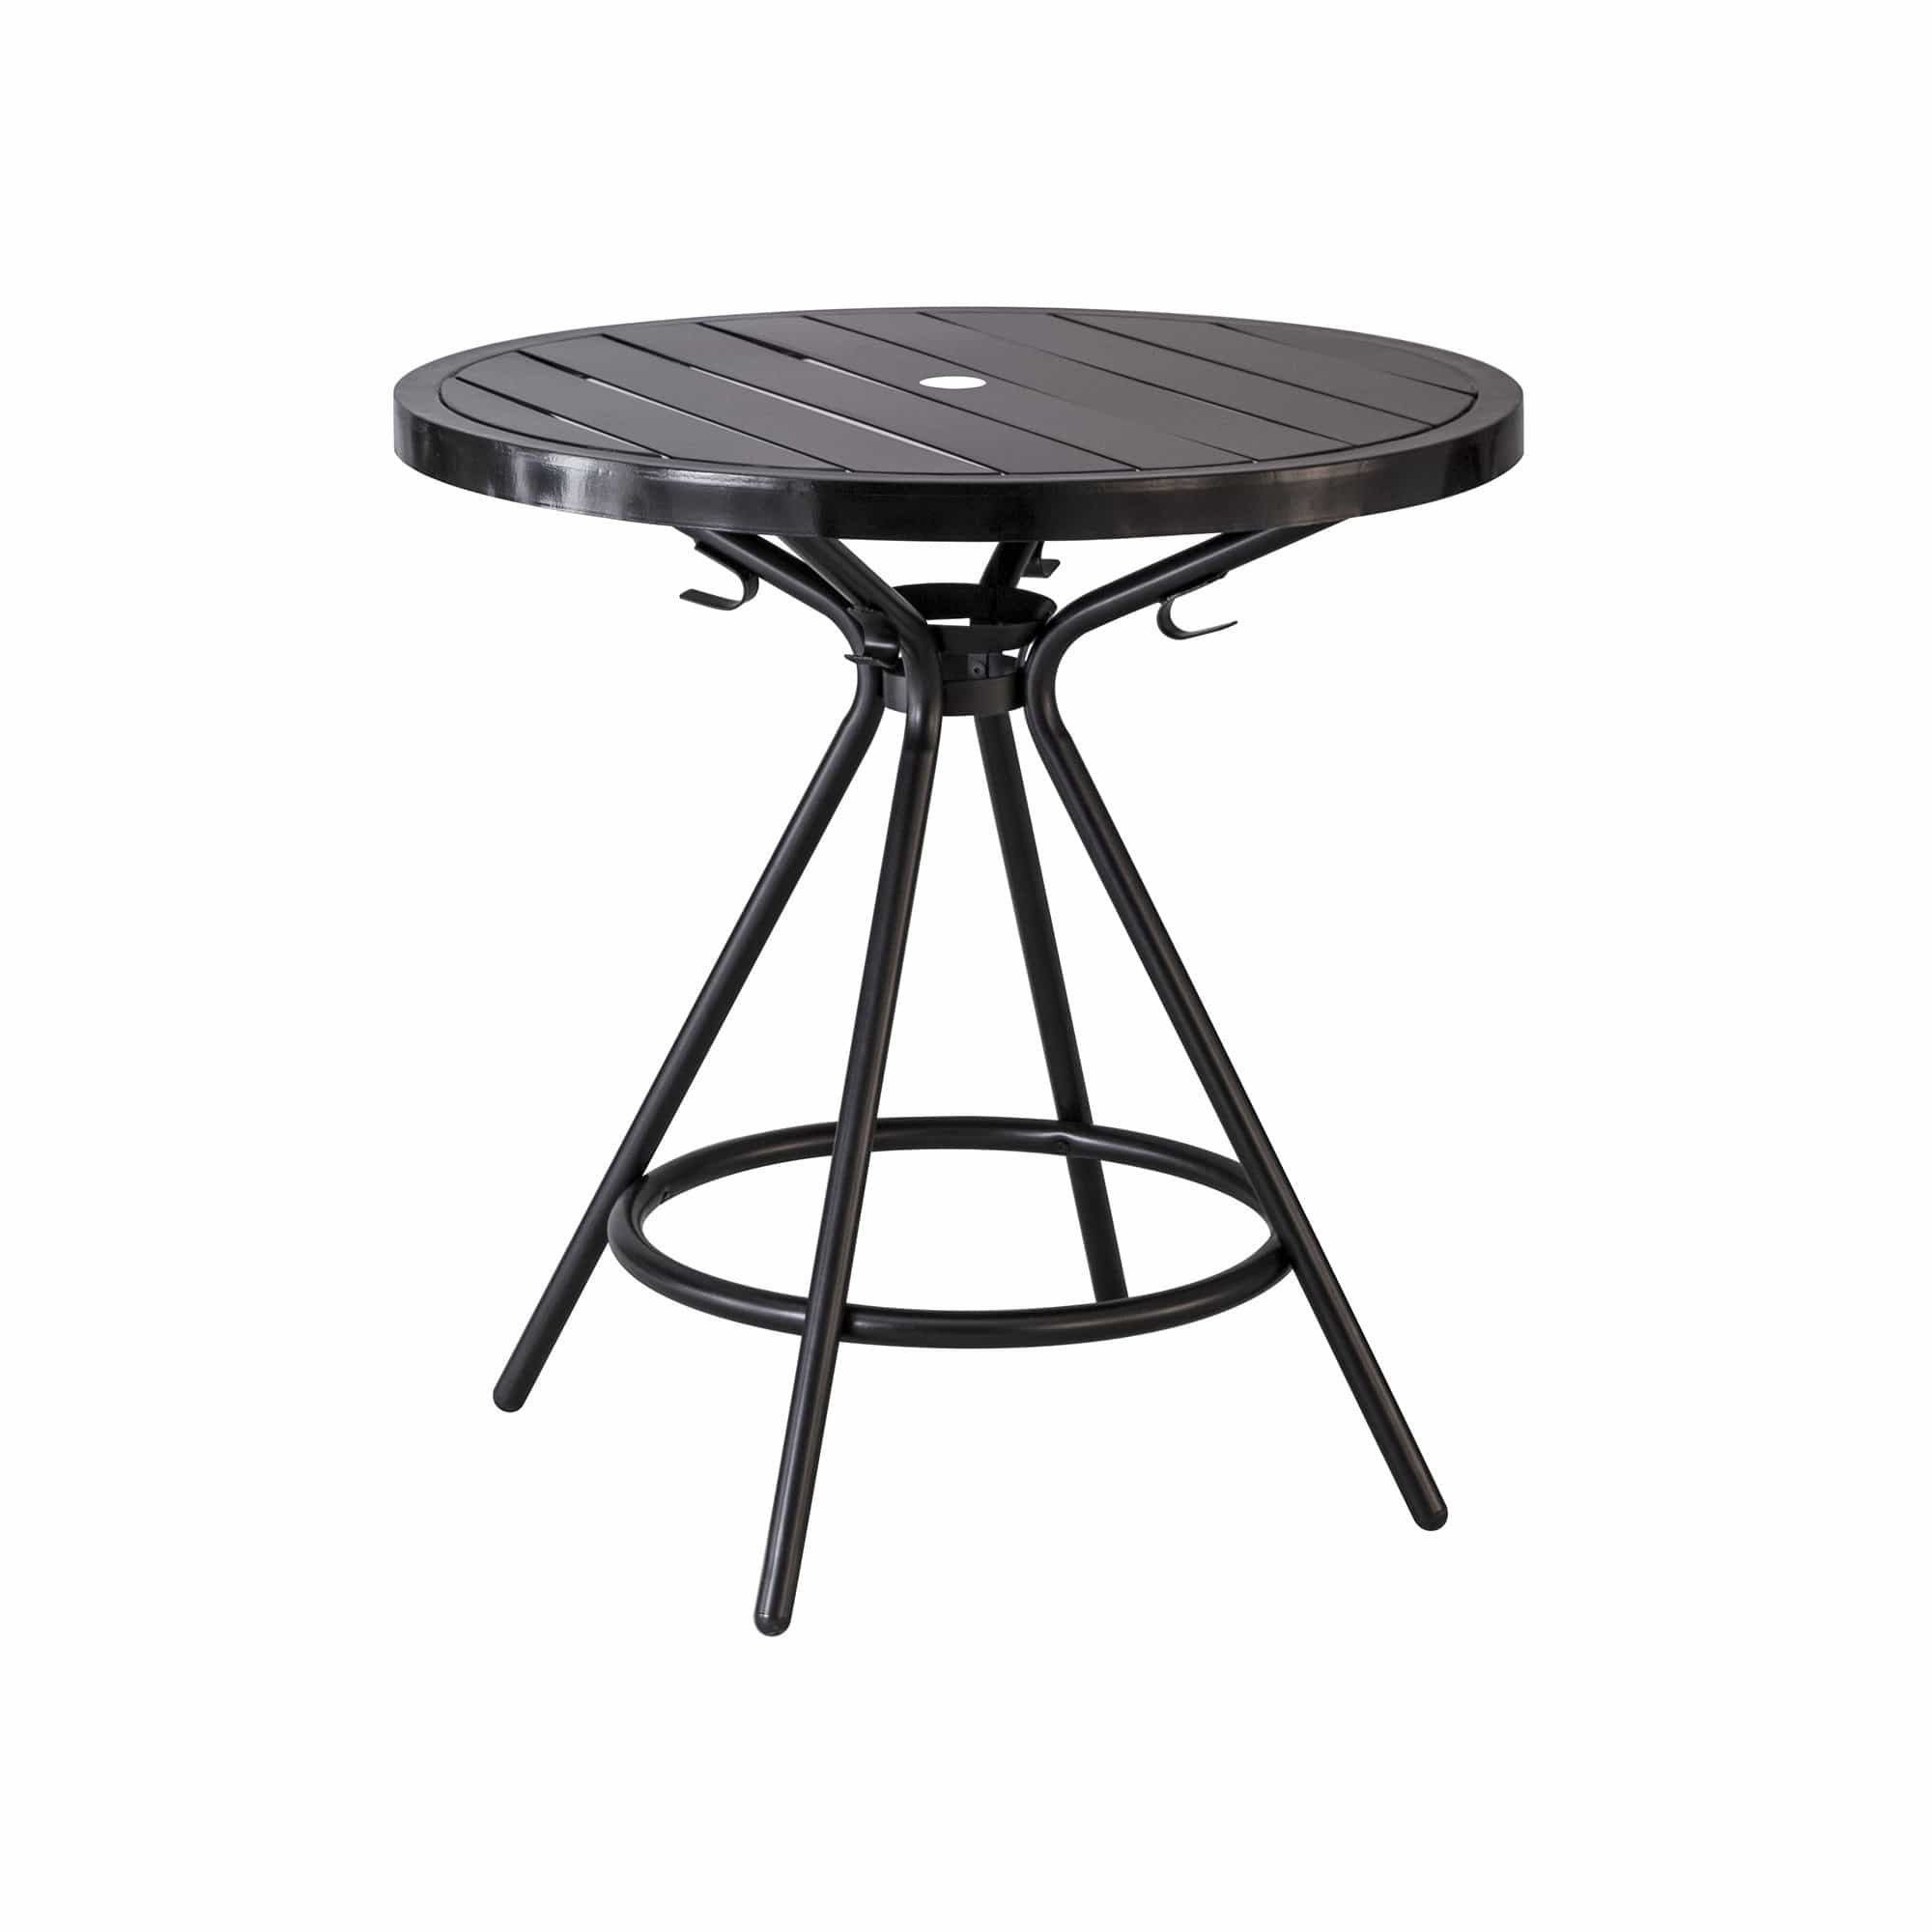 bedinhome - 4361BL CoGo™ Outdoor/Indoor Weather Resistant 30 Inch Round Shape Black Steel Table With Hangup Hook - Safco - Outdoor/Indoor Table